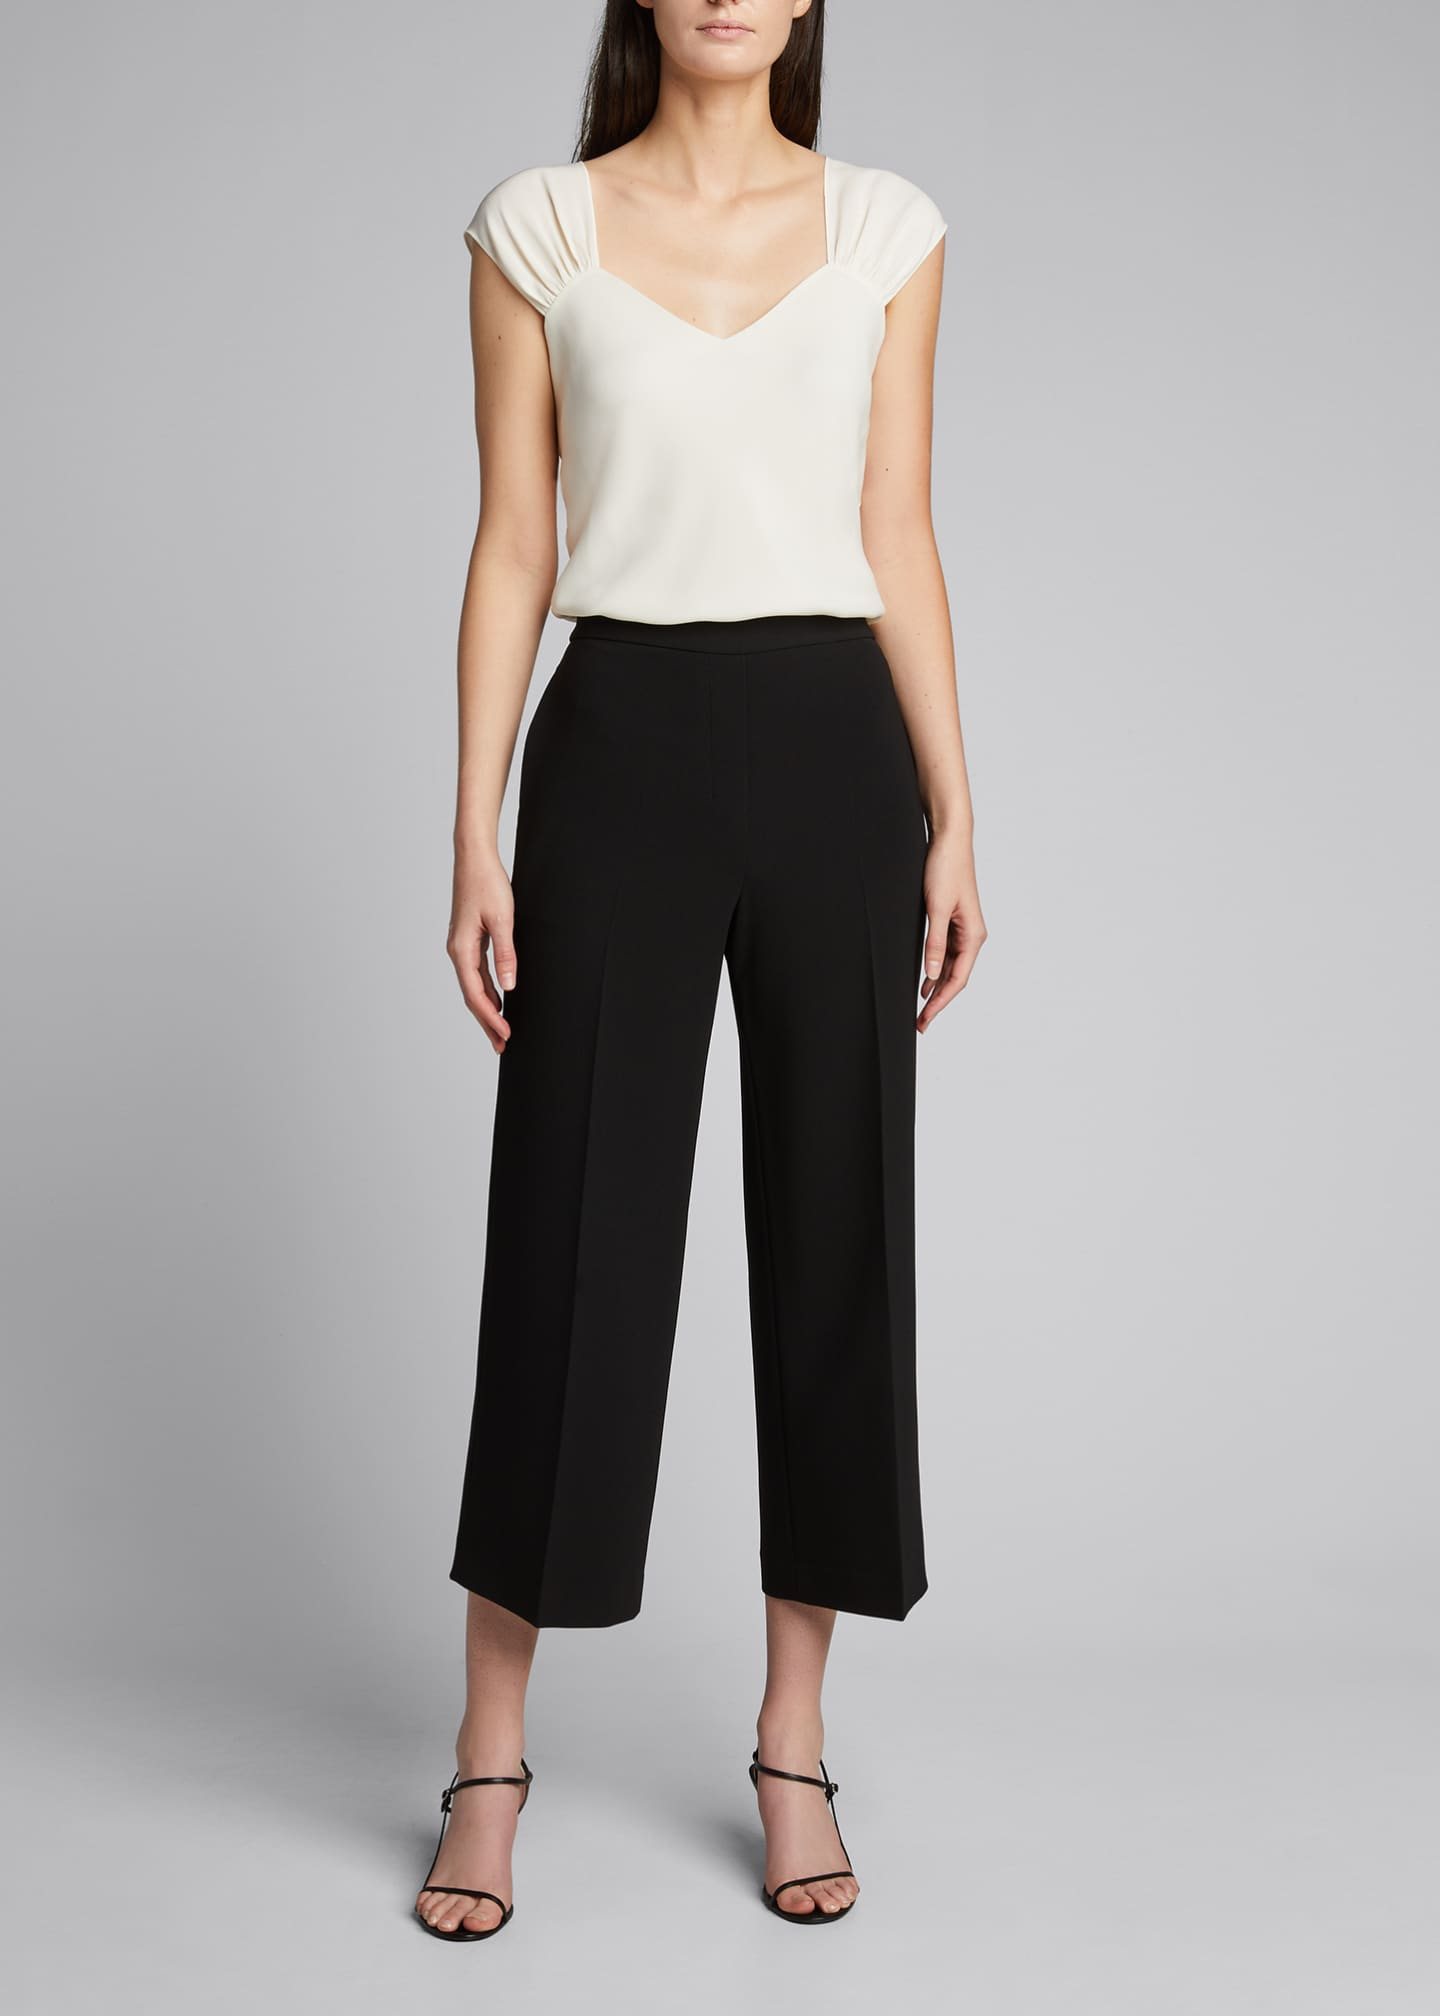 Image 1 of 5: Ruched V-Neck Sleeveless Top